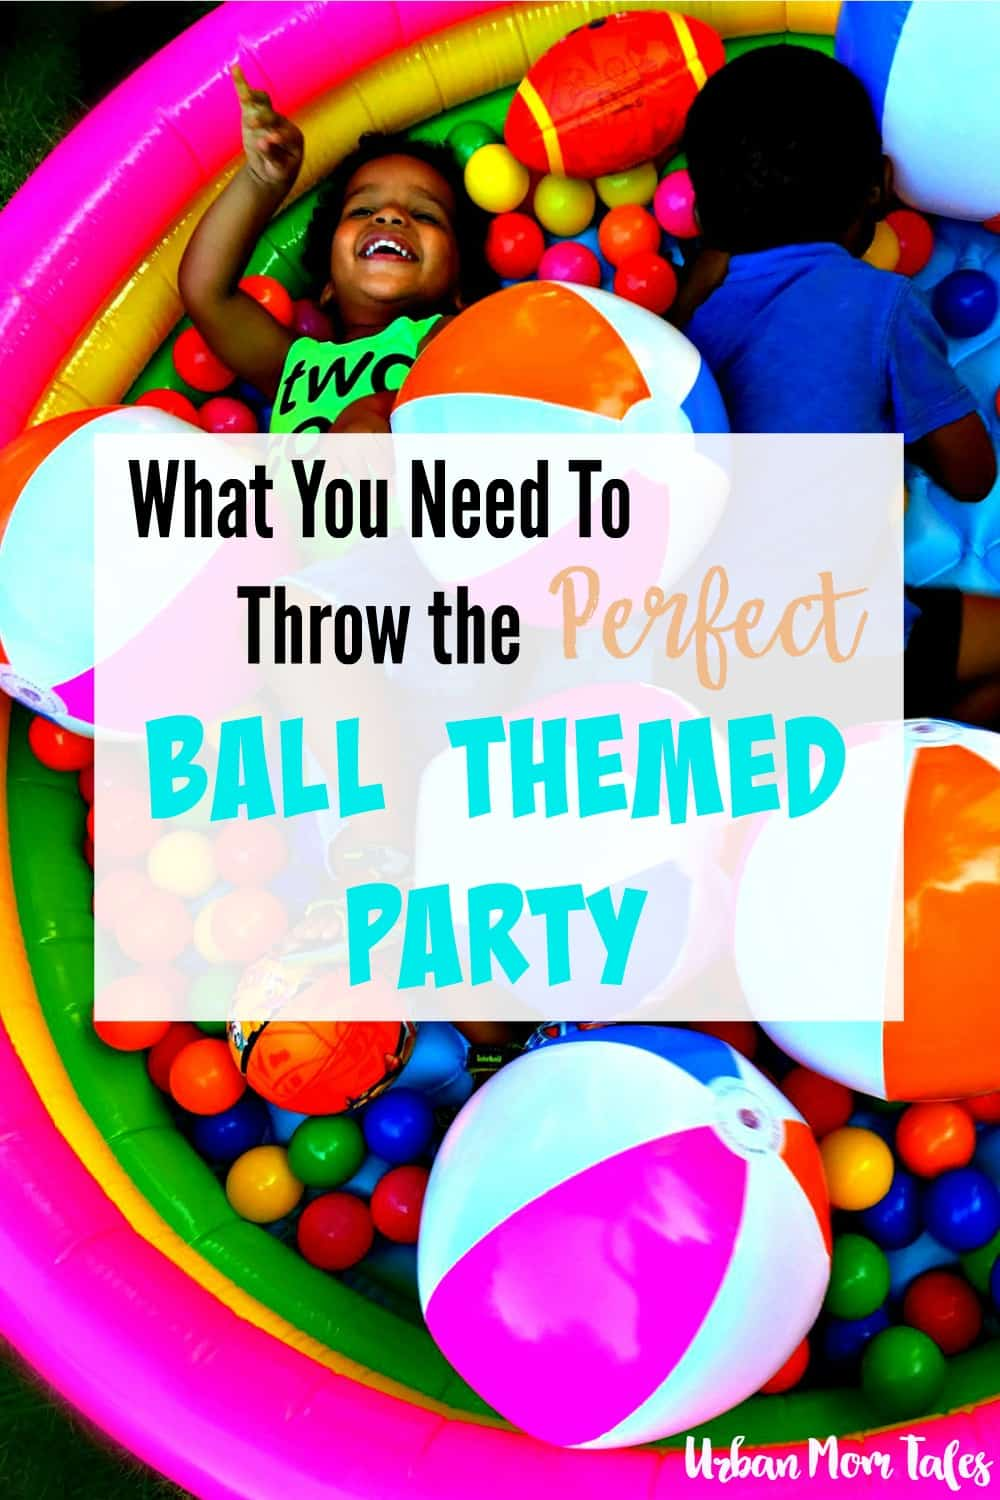 What You Need to Throw the Perfect Ball Themed Birthday Party